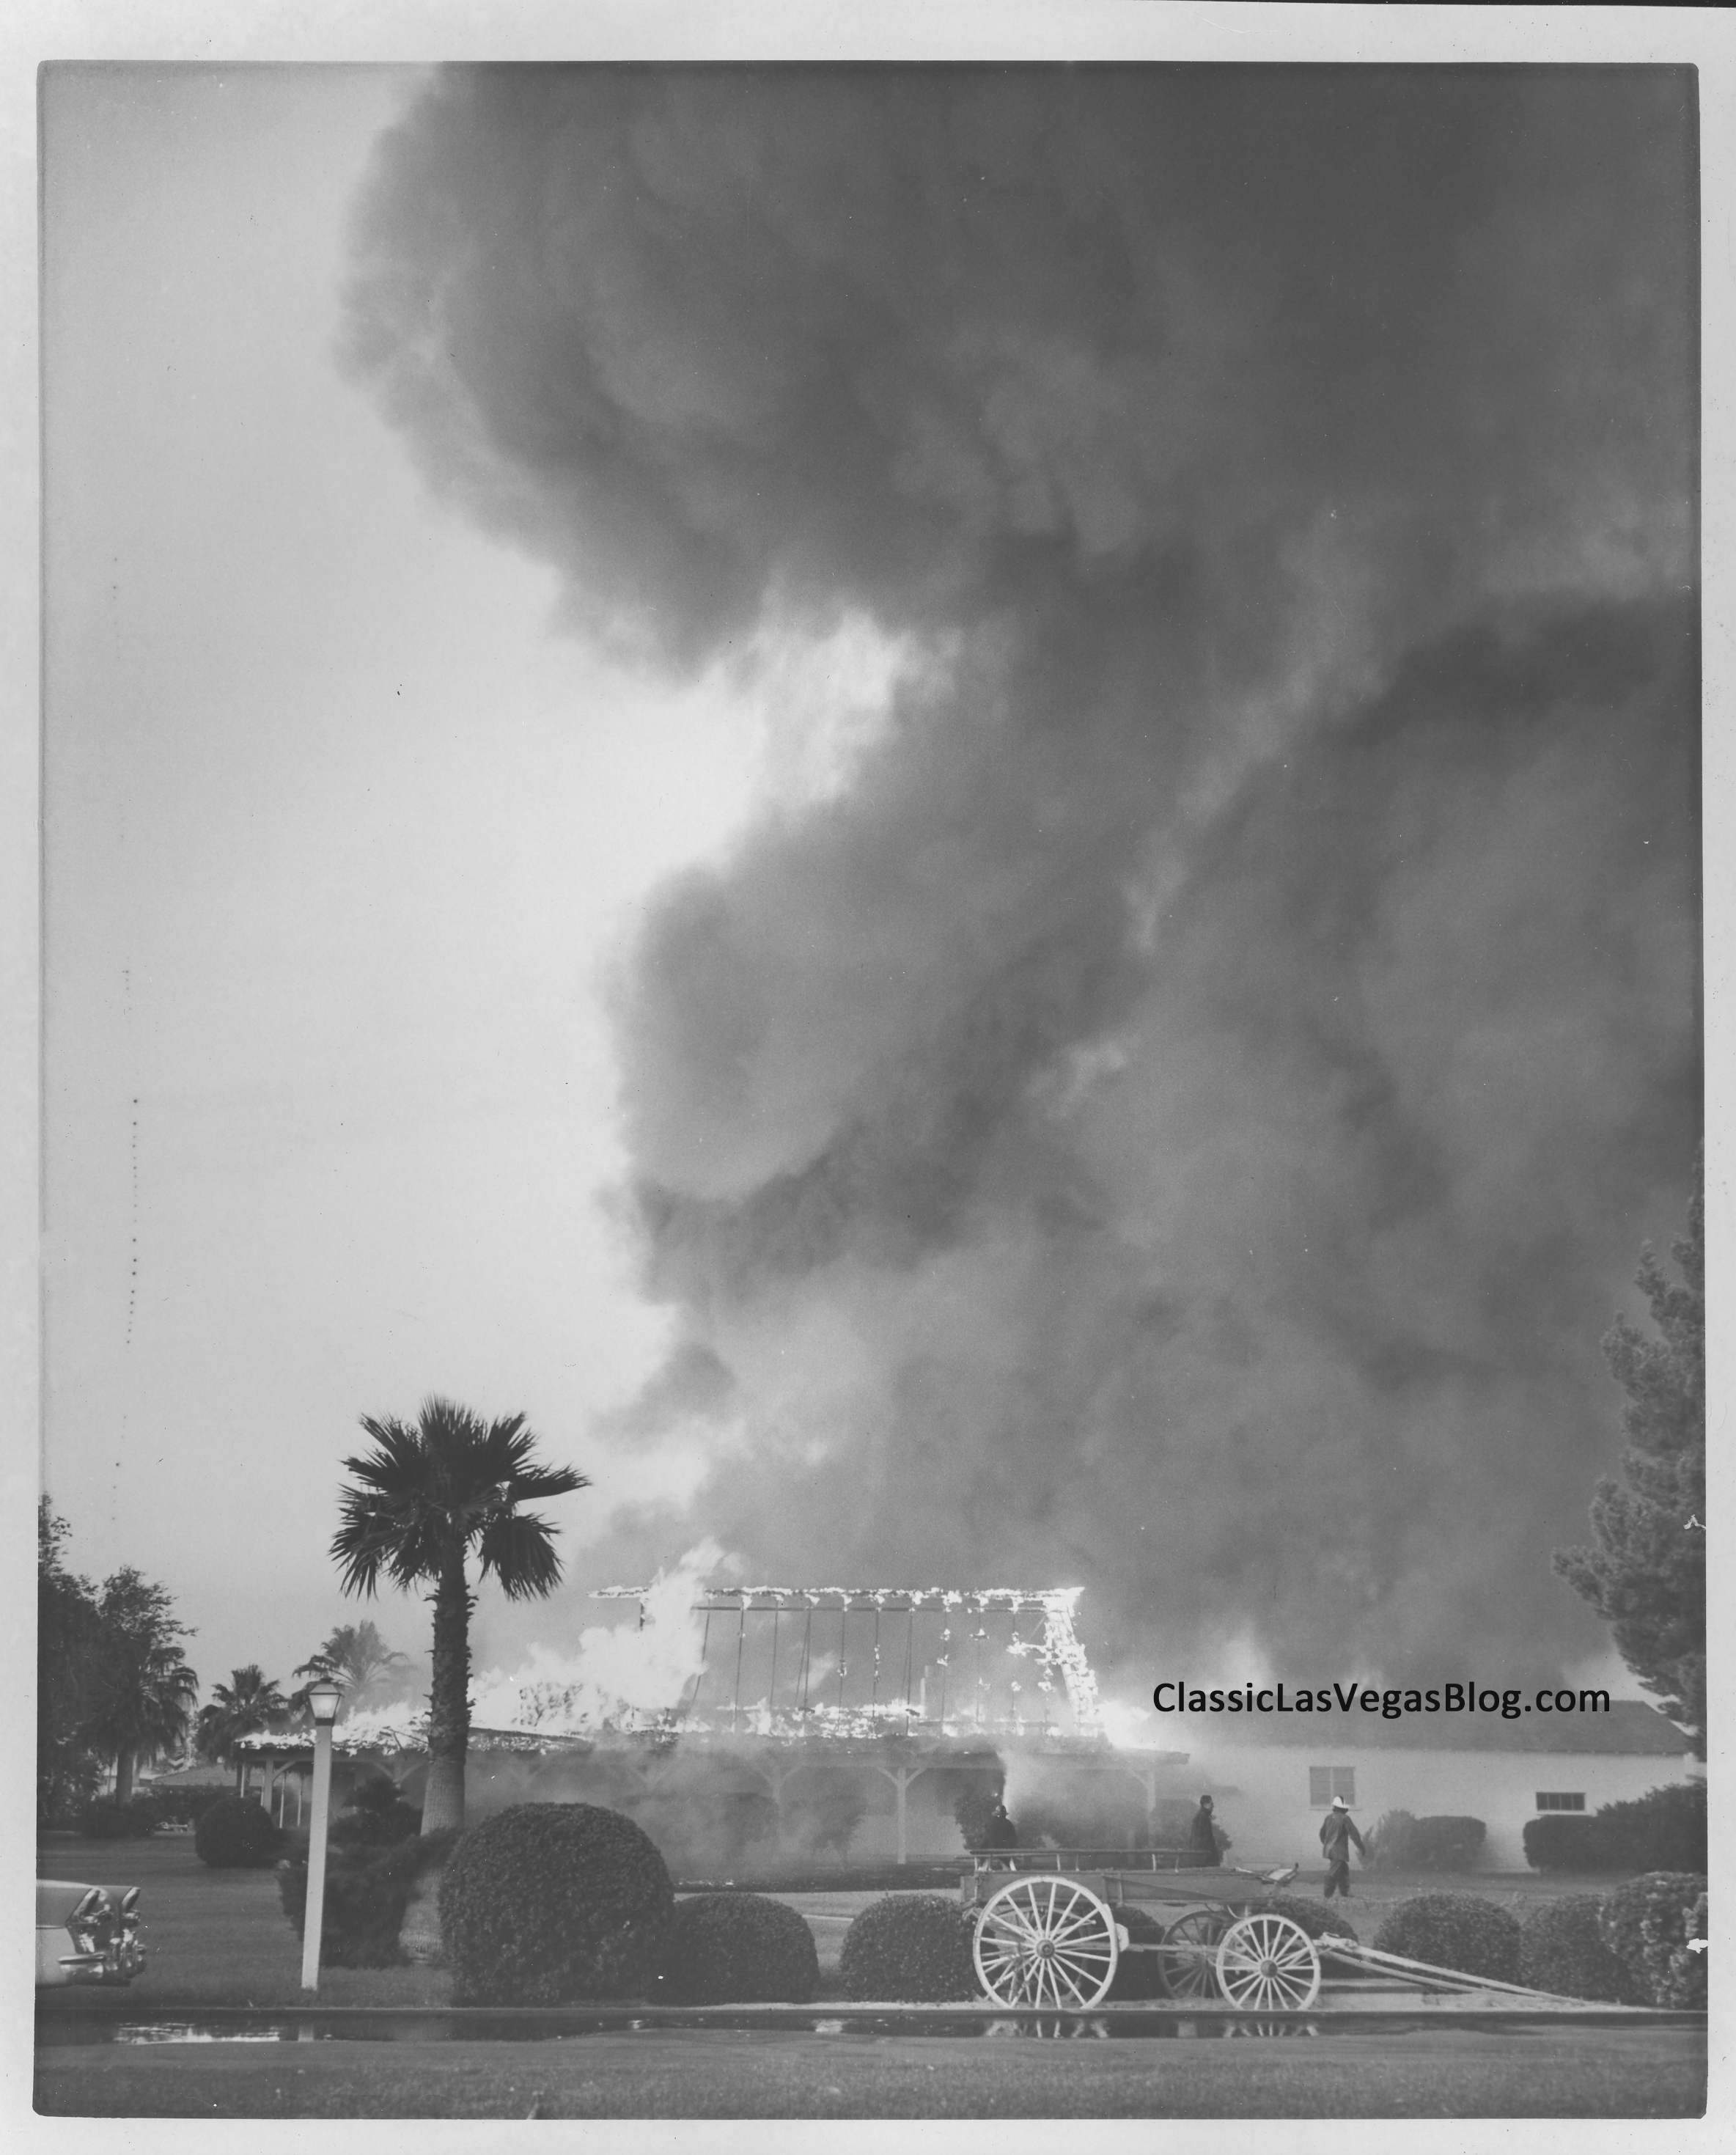 Fire rages at the El Rancho Vegas